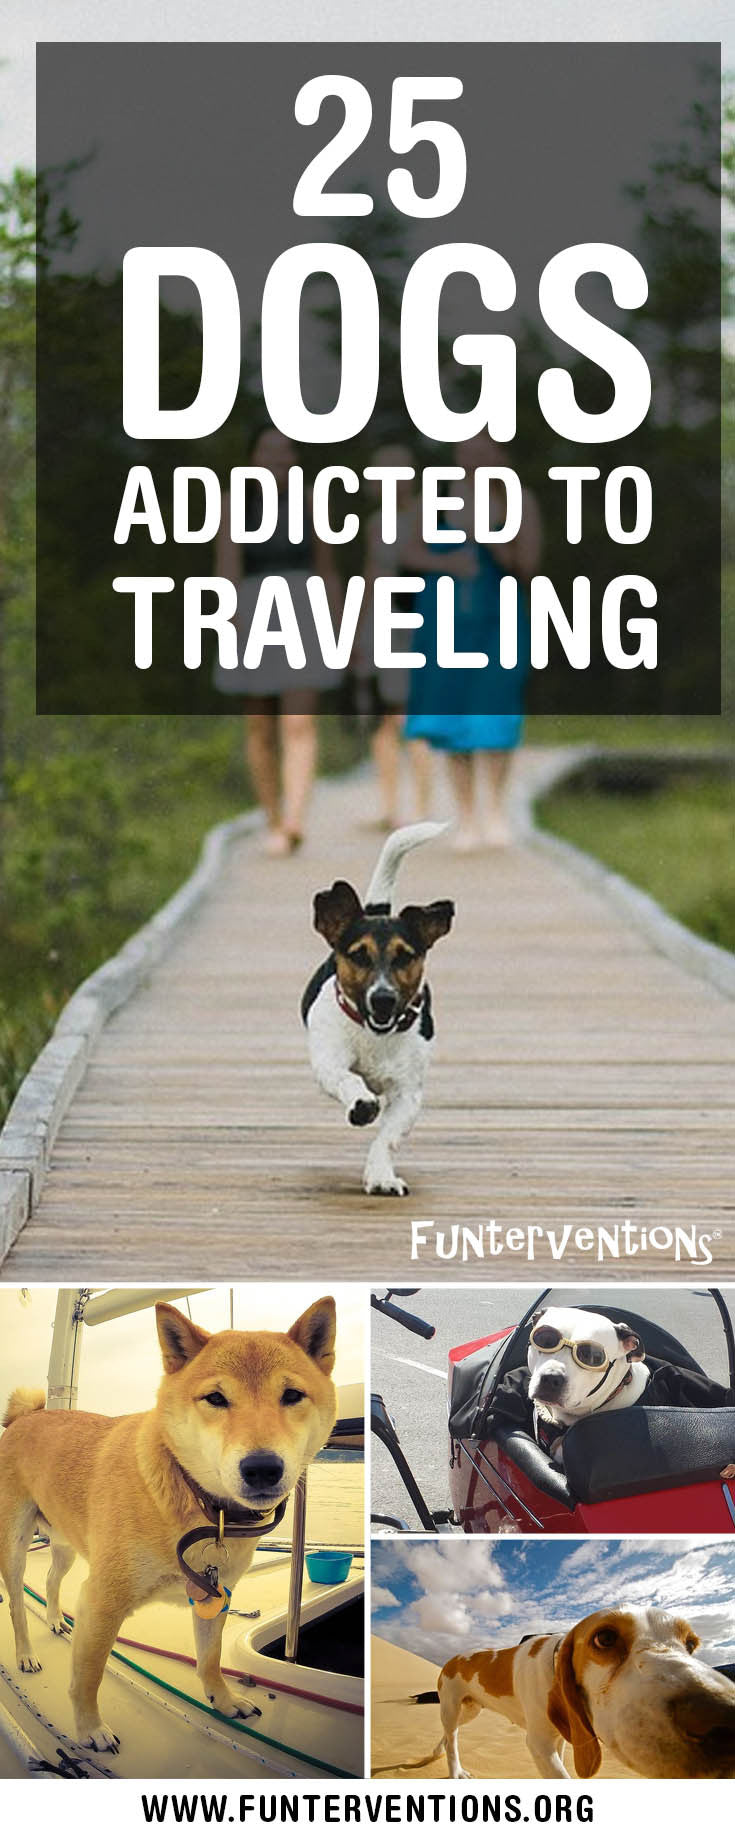 25 Dogs Who Are Addicted To Travel | Brought to you by Funterventions.org | Travel Dogs | Adventure Dogs | Travel With Dogs | Traveling Dogs | Dogs Love Travel Too